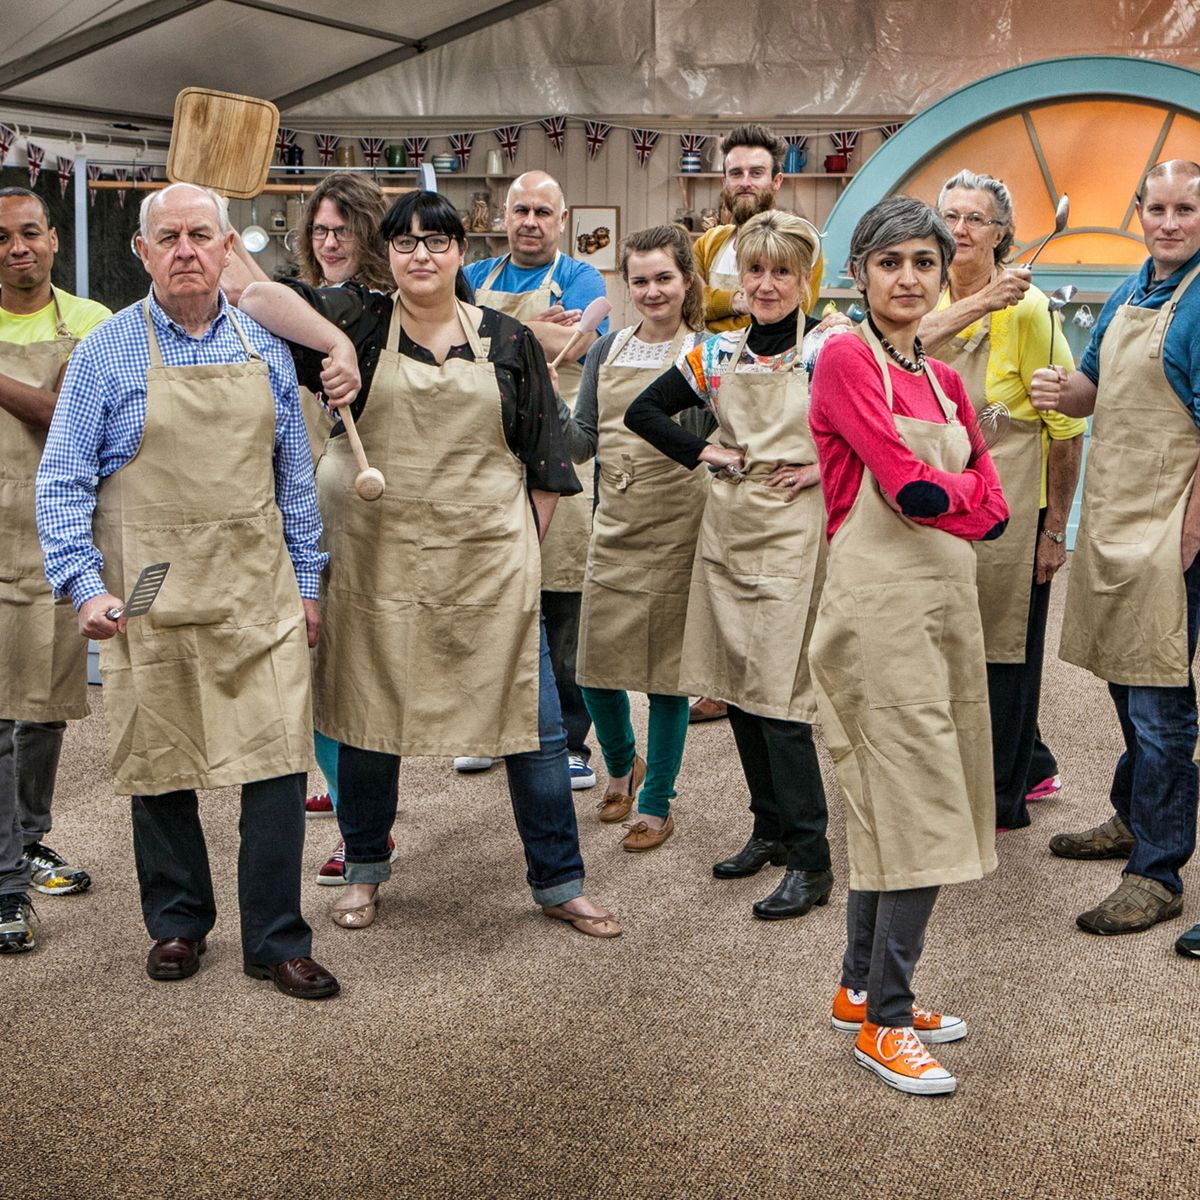 The Great British Bakeoff contestants: where are they now?